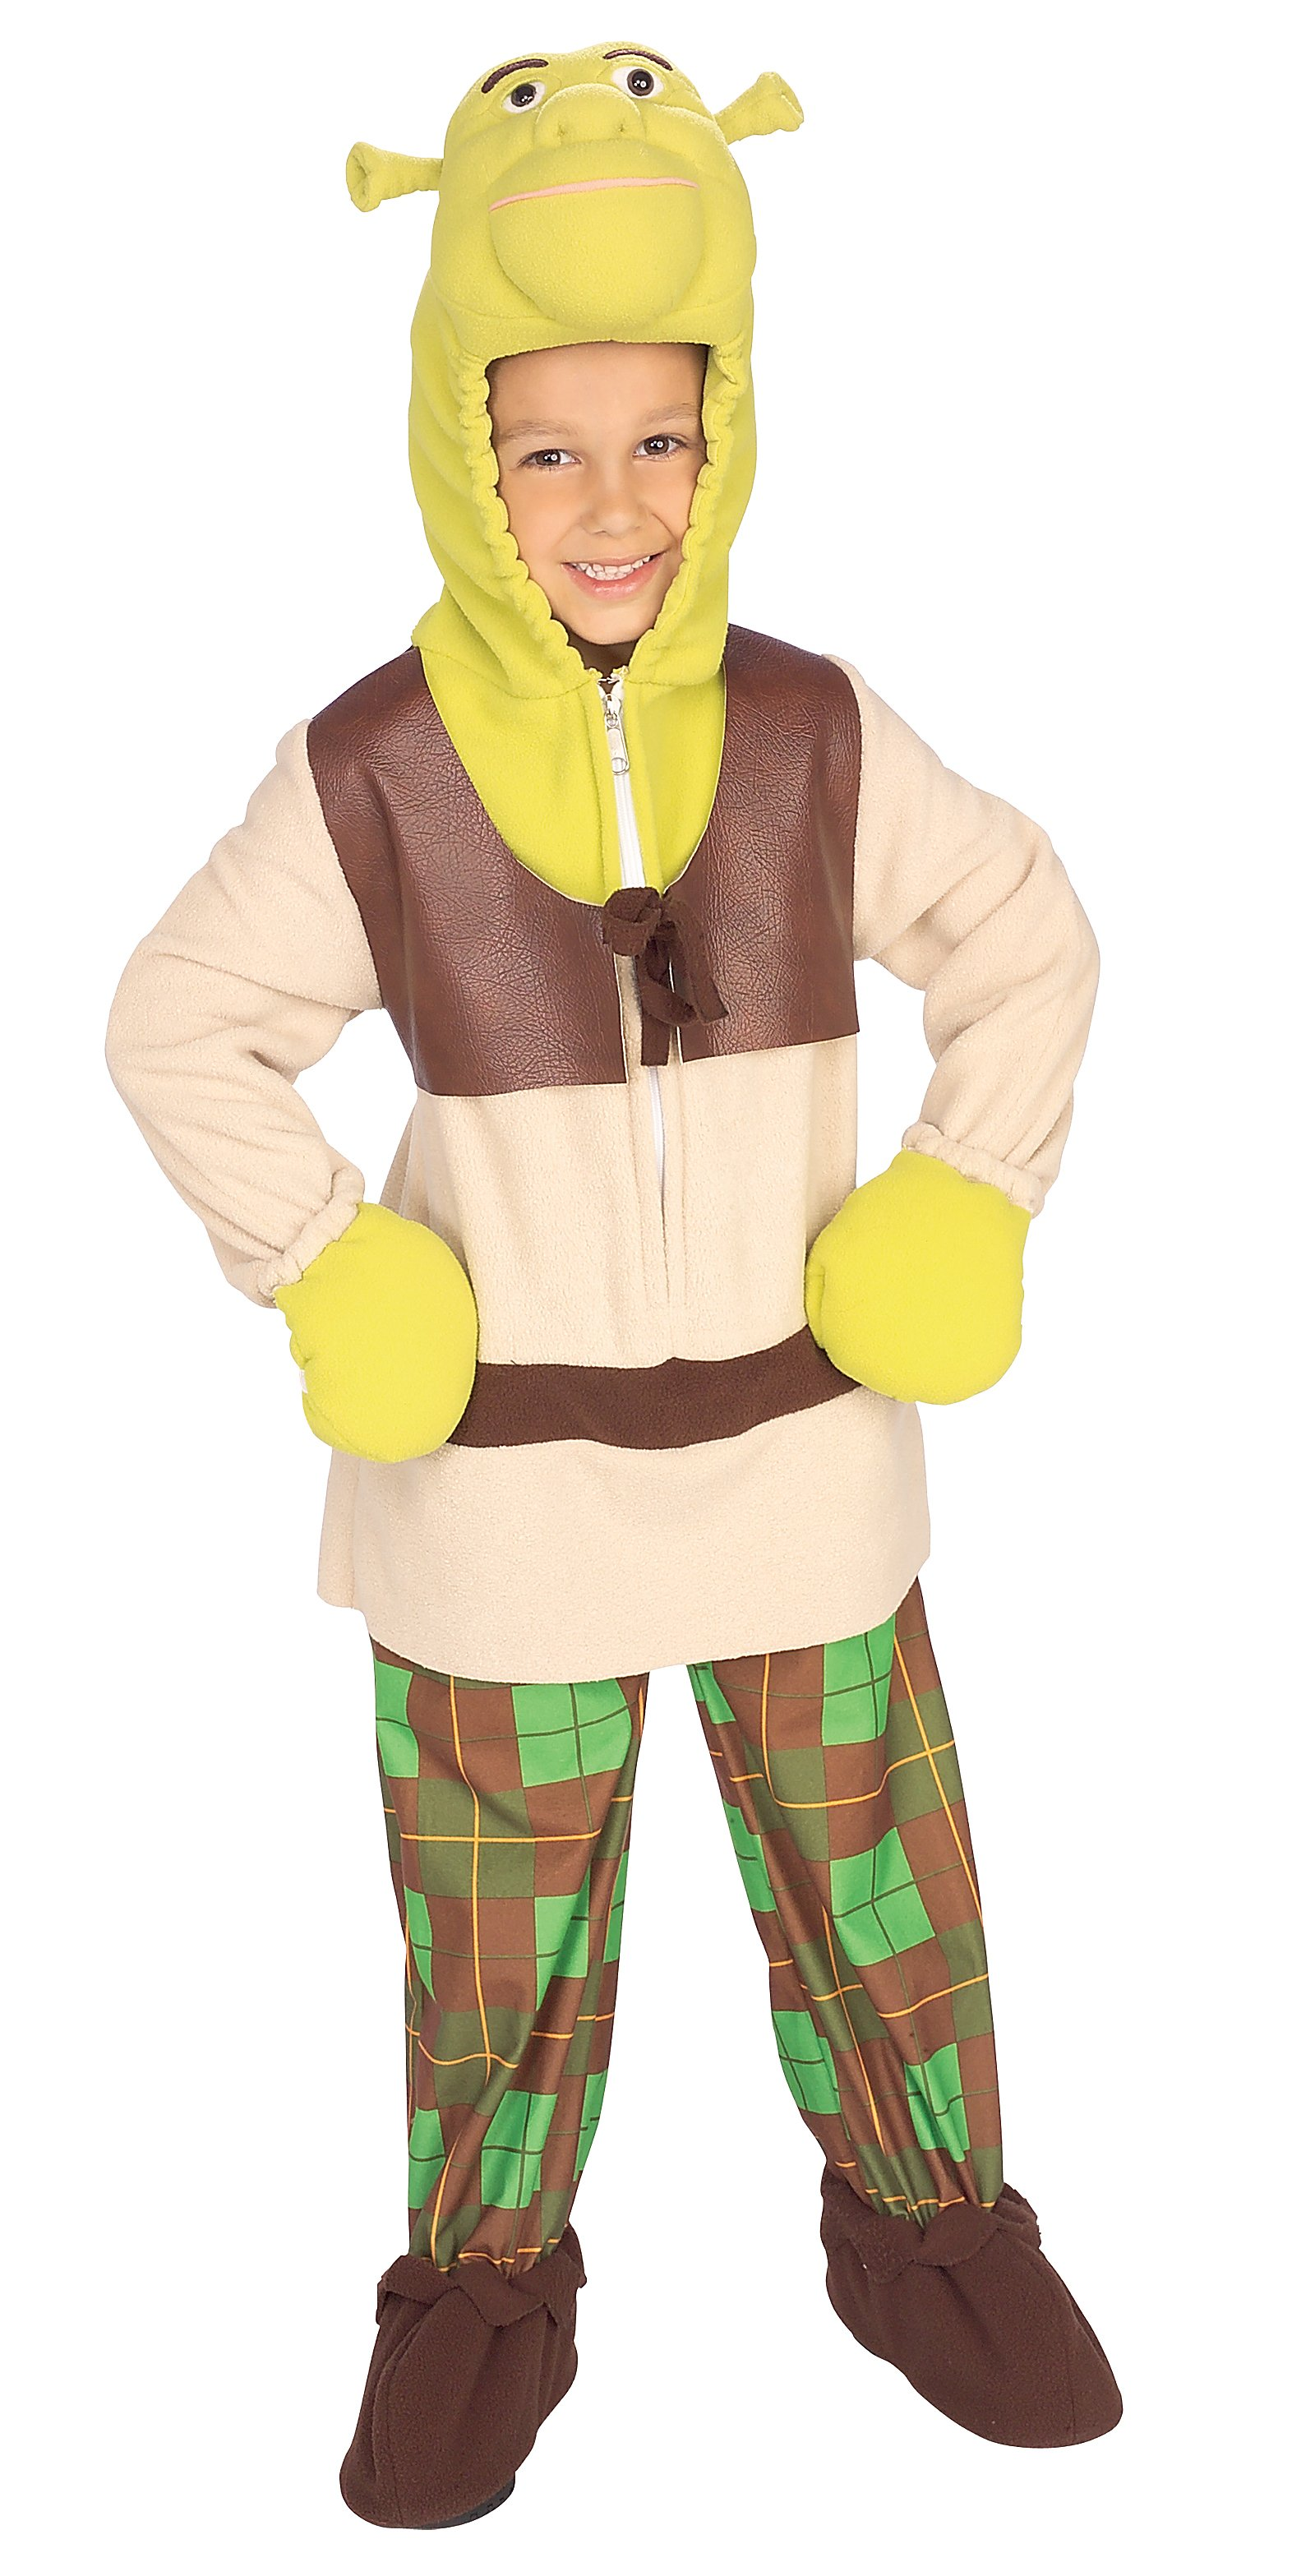 Shrek Forever After - Shrek Deluxe Toddler Costume